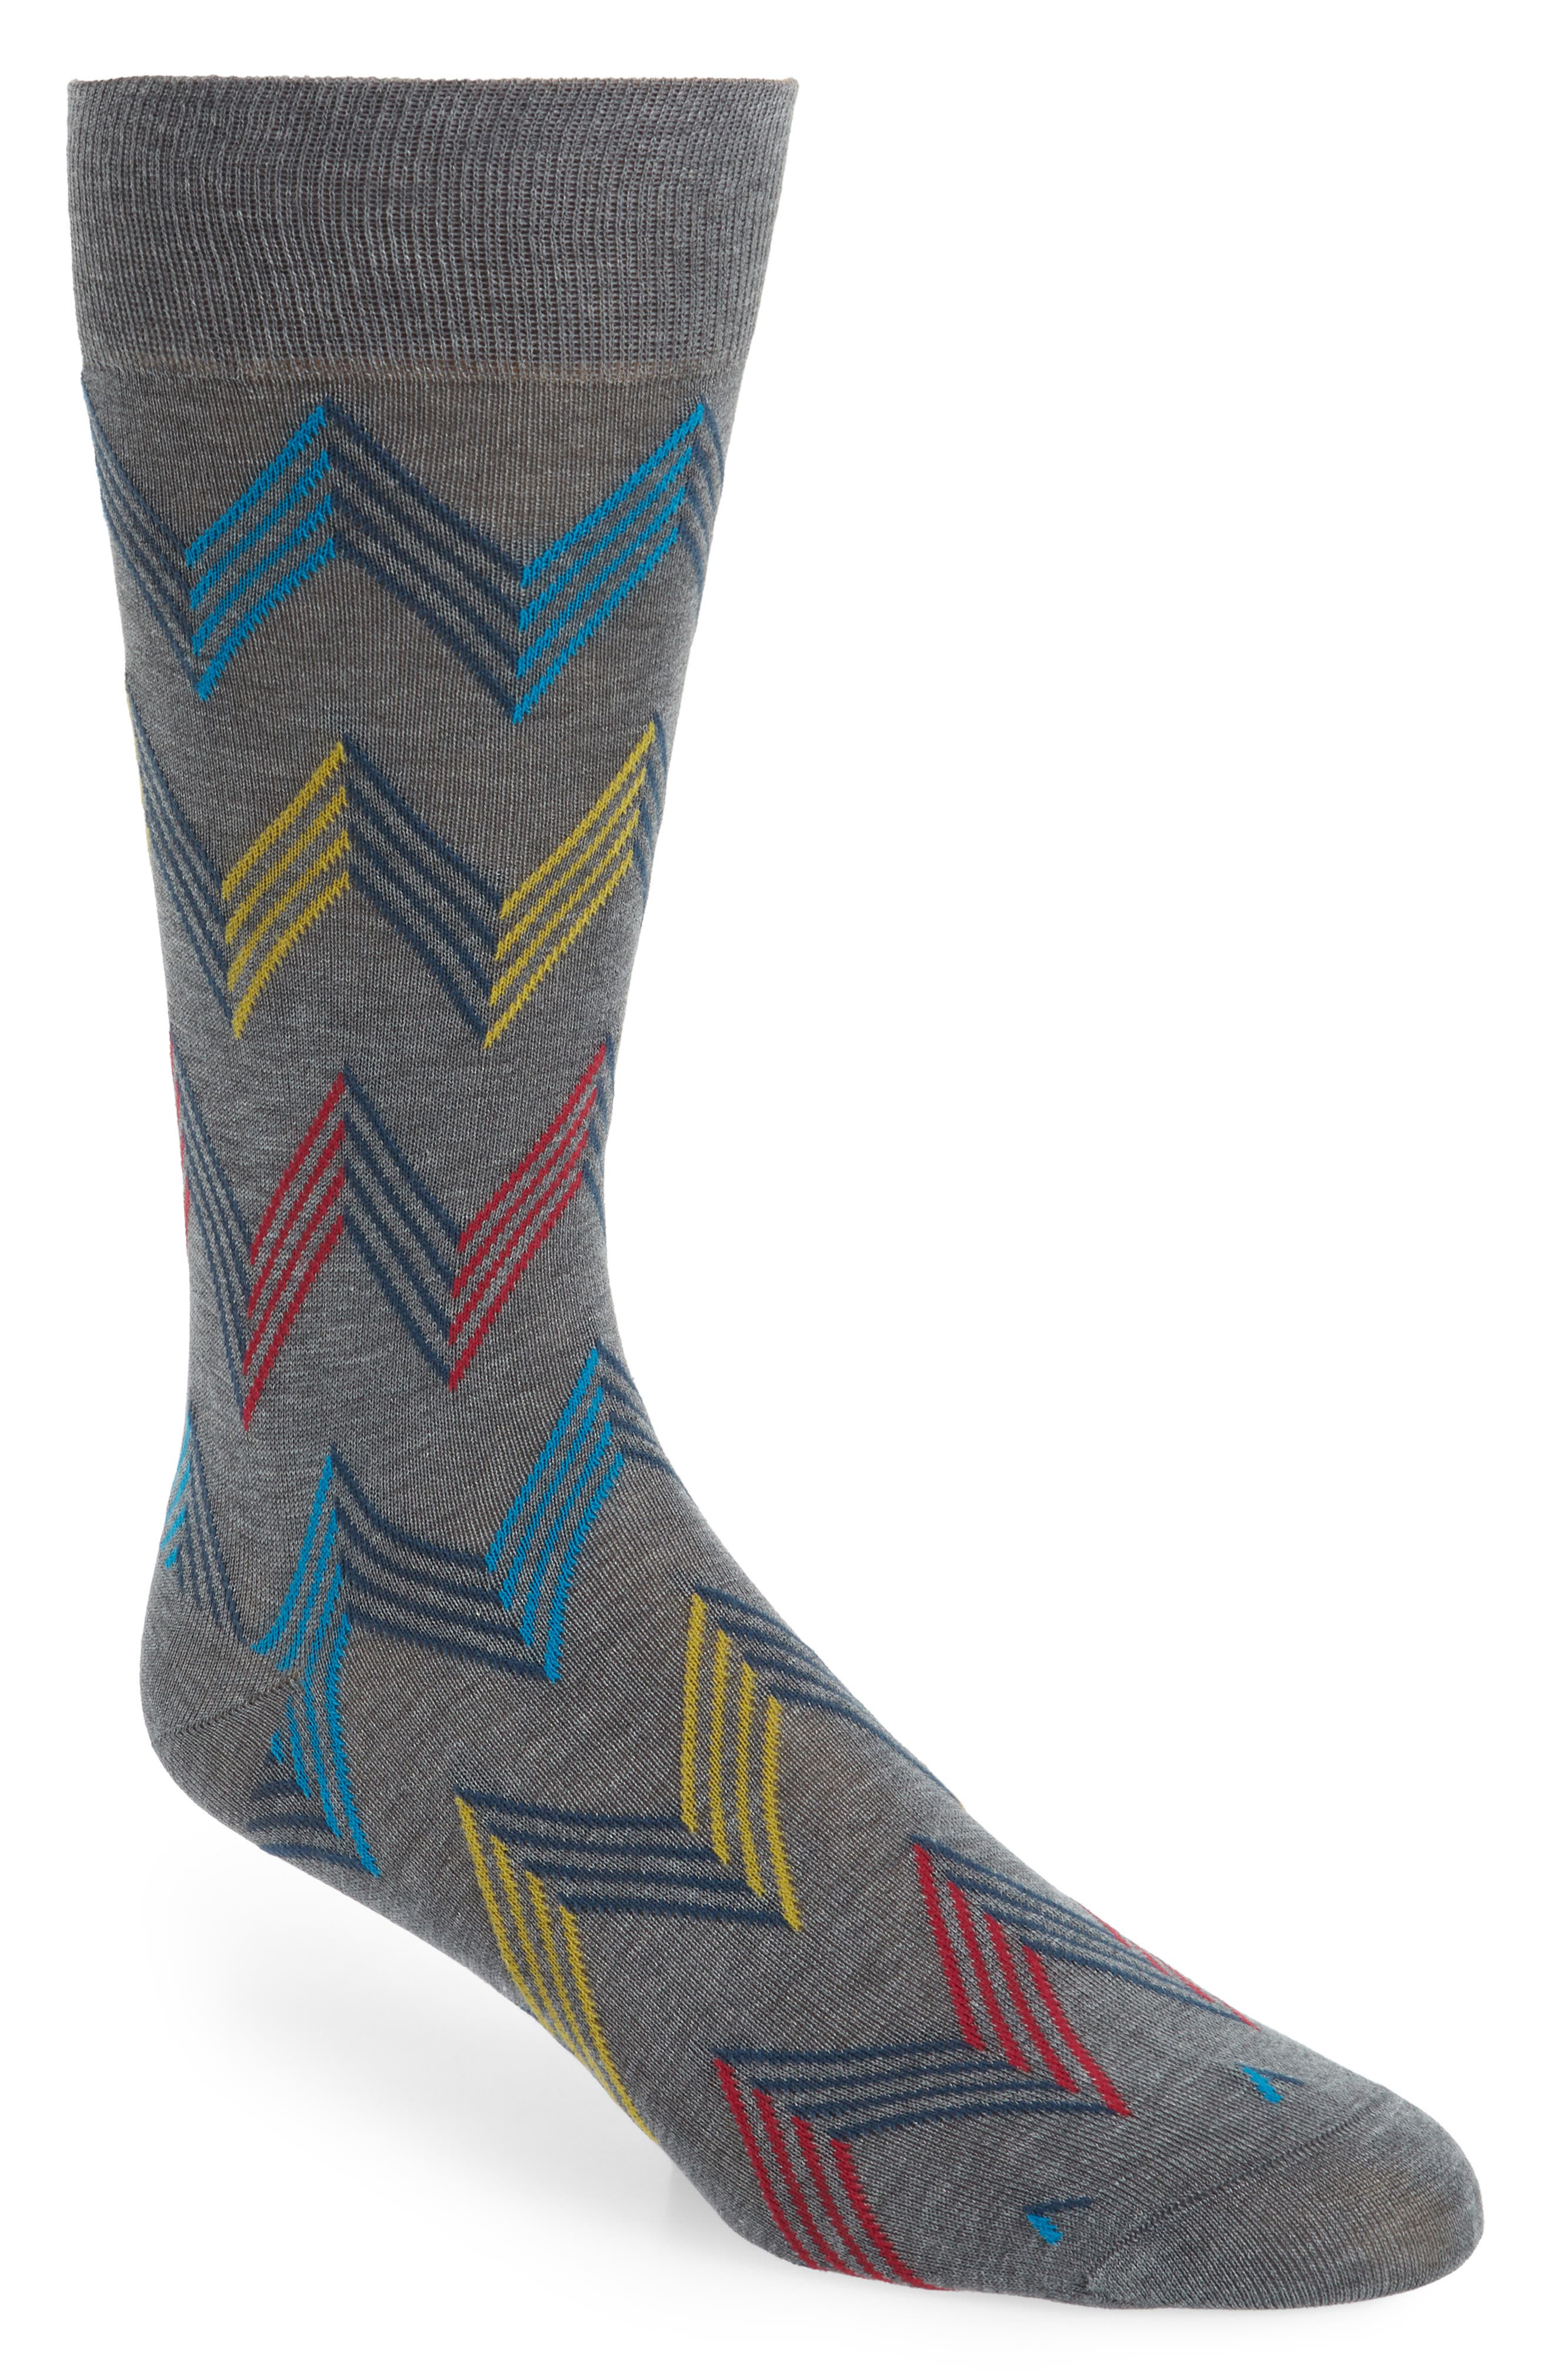 Zigzag Socks,                             Main thumbnail 1, color,                             031